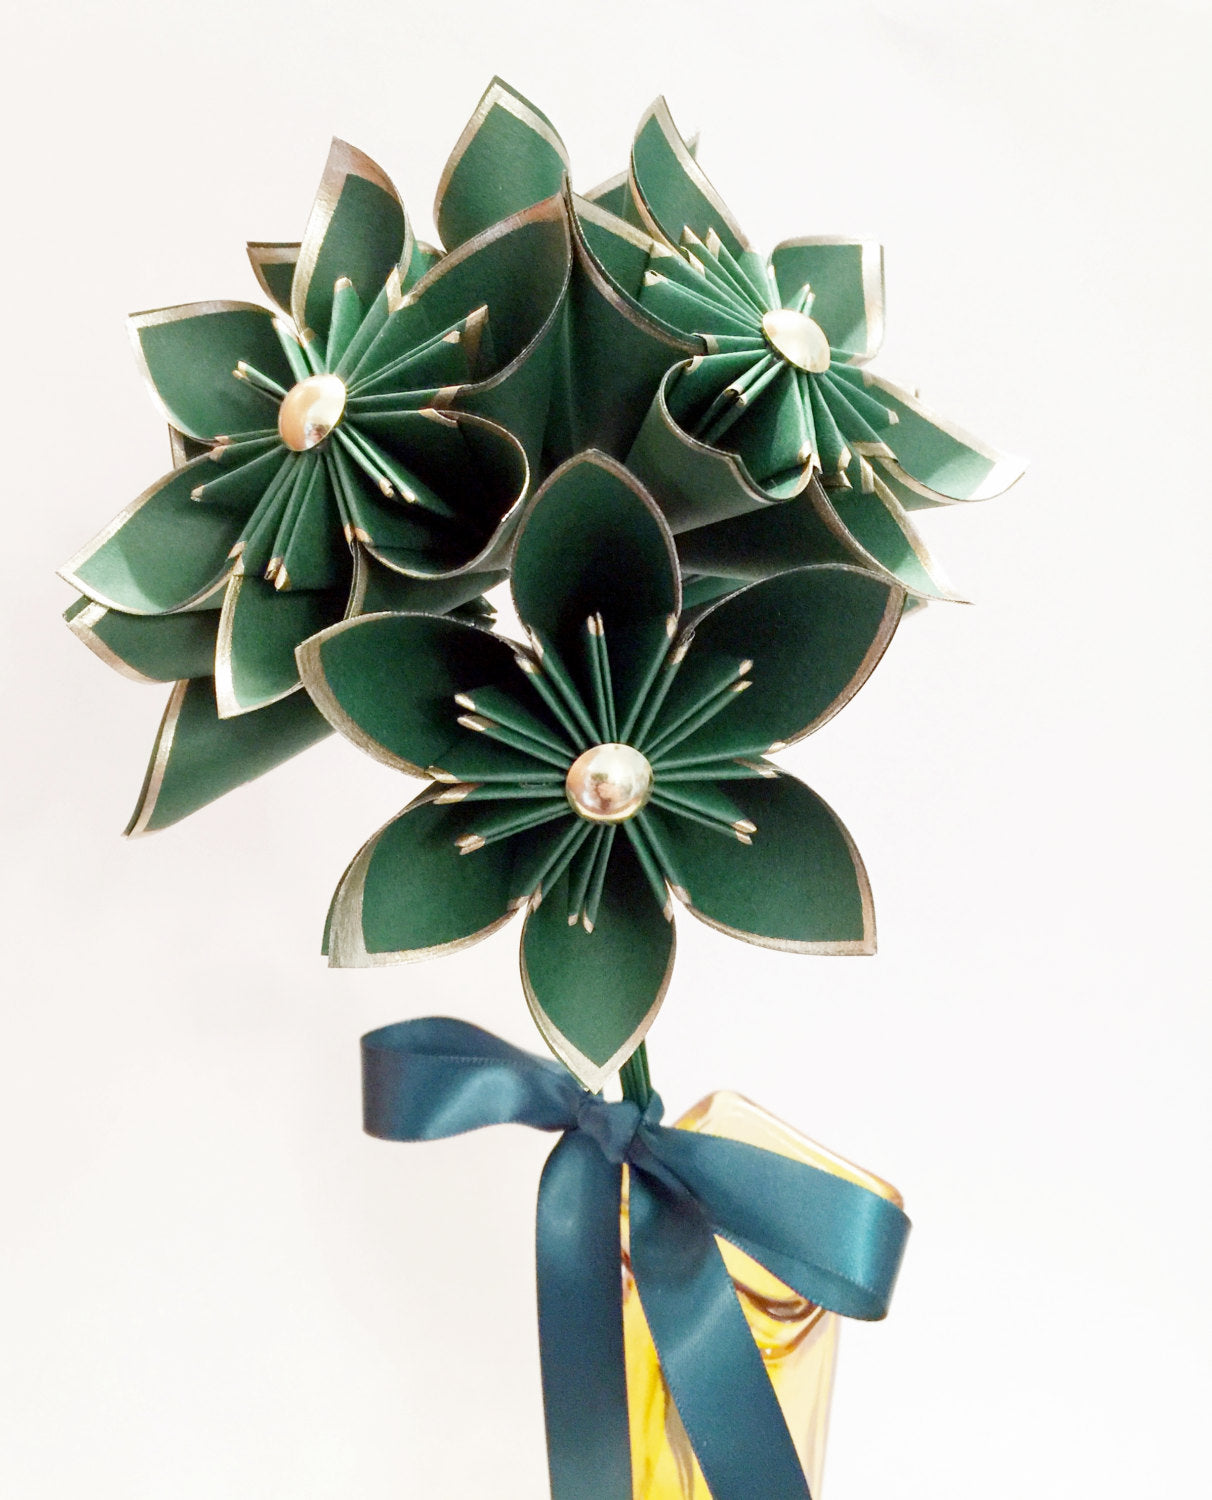 6 Gold & Emerald Paper Flowers- Ready to ship, 1st Anniversary gift, handmade origami, gift, birthday, wedding decor, perfect for her